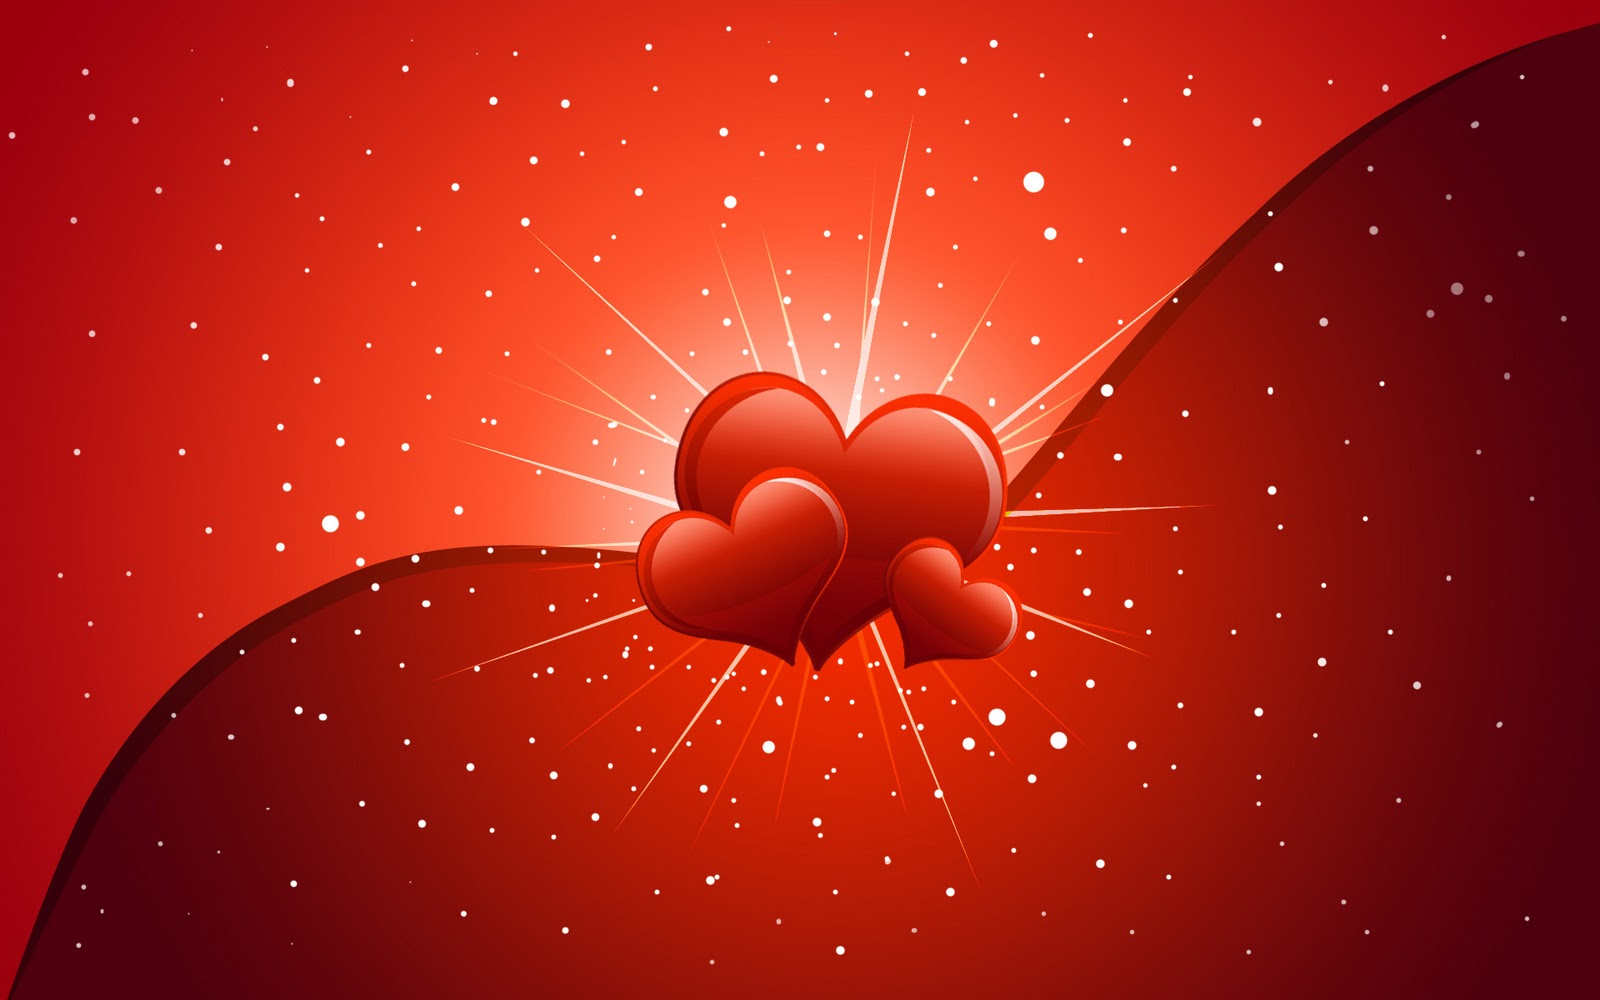 Beautiful valentines day greetings e cards and wallpapers spicytec beautiful valentines day greetings e cards and wallpapers m4hsunfo